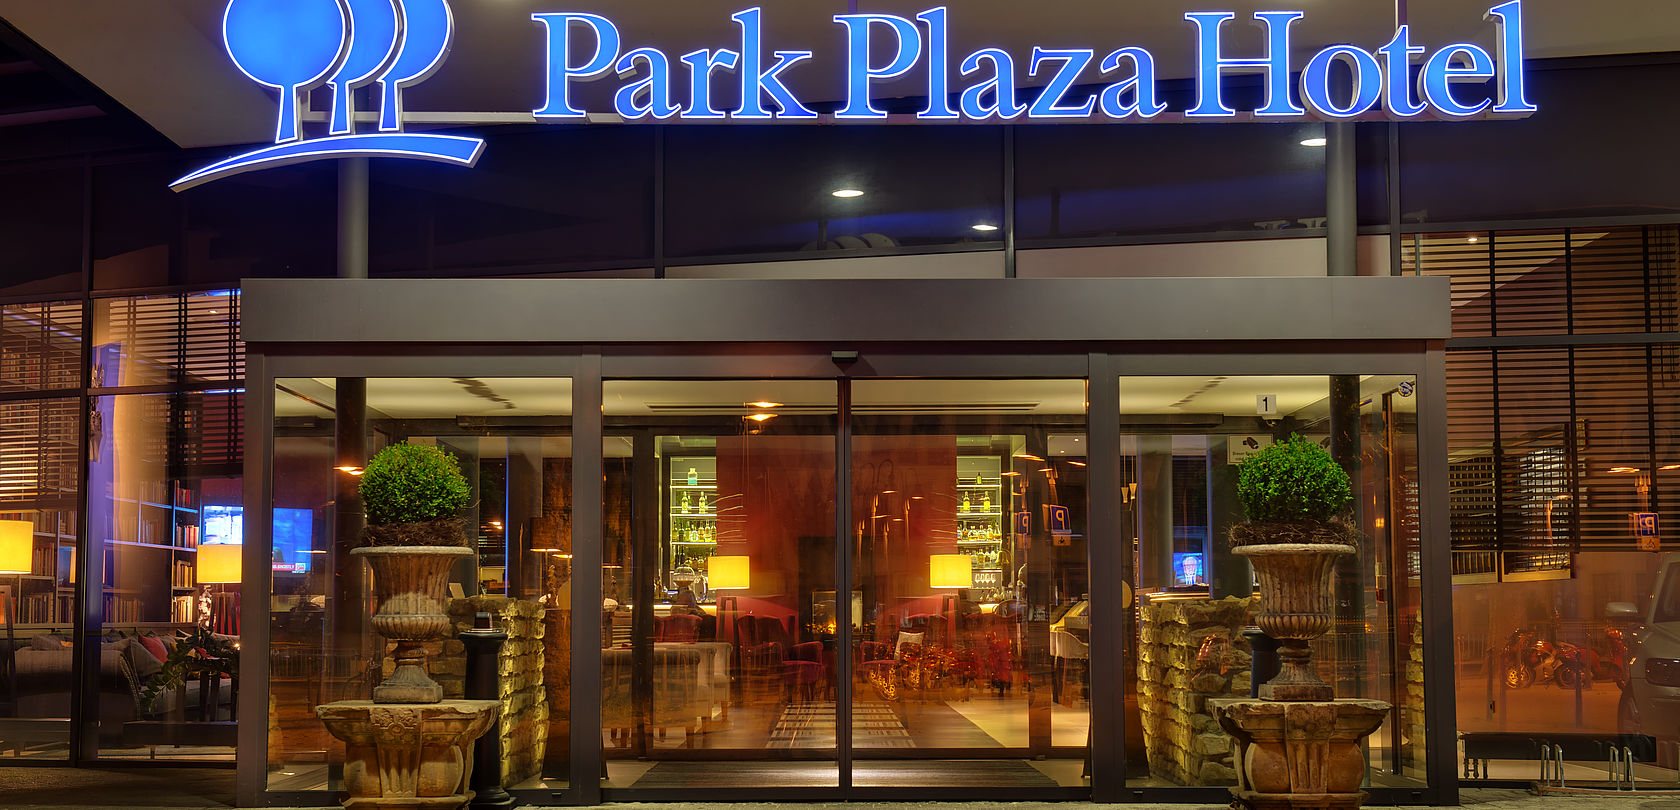 Eingang Hotel Park Plaza Trier